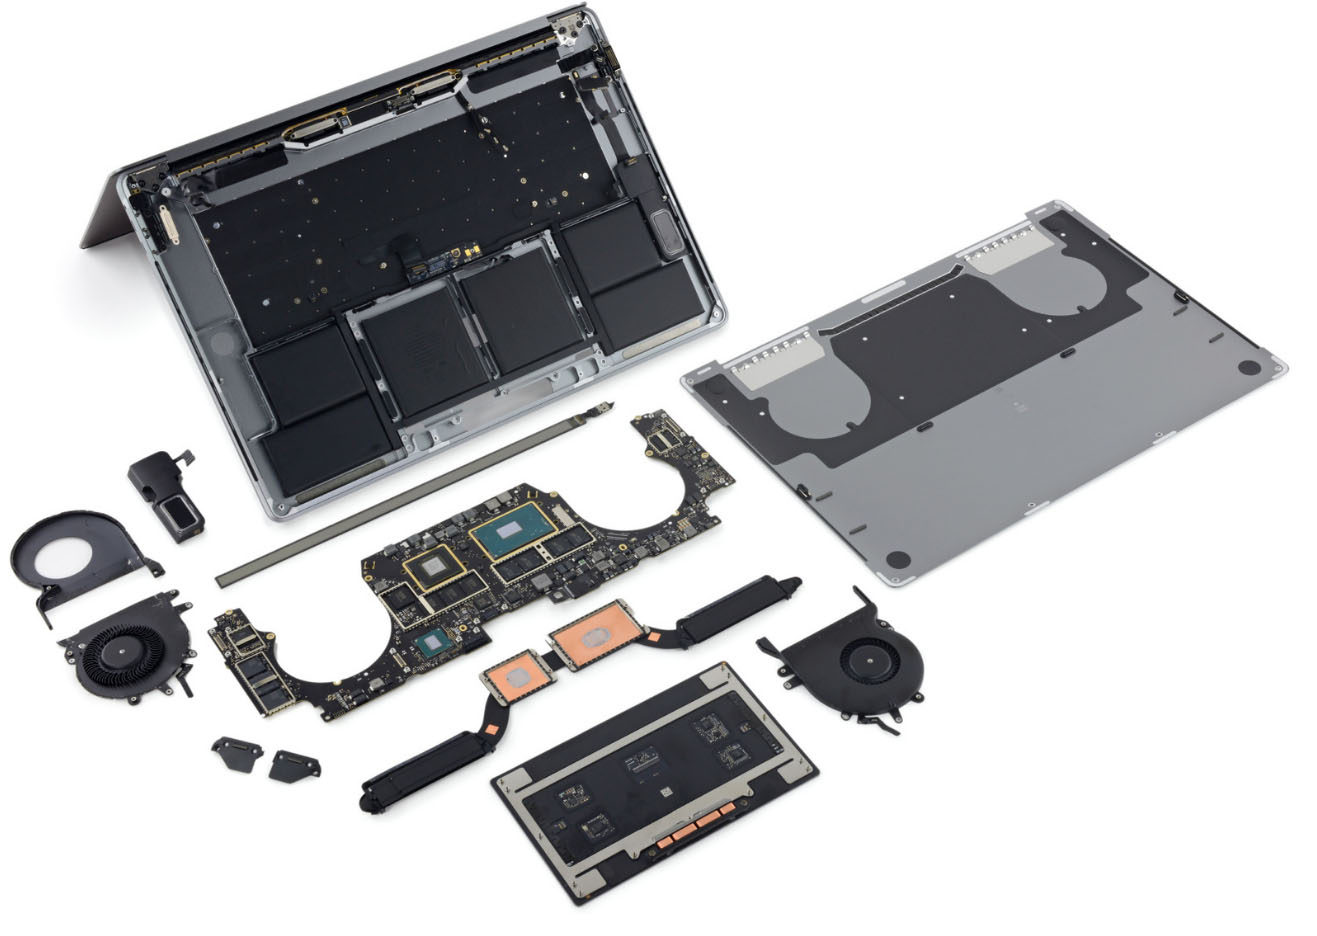 MacBook Pro teardown (1)